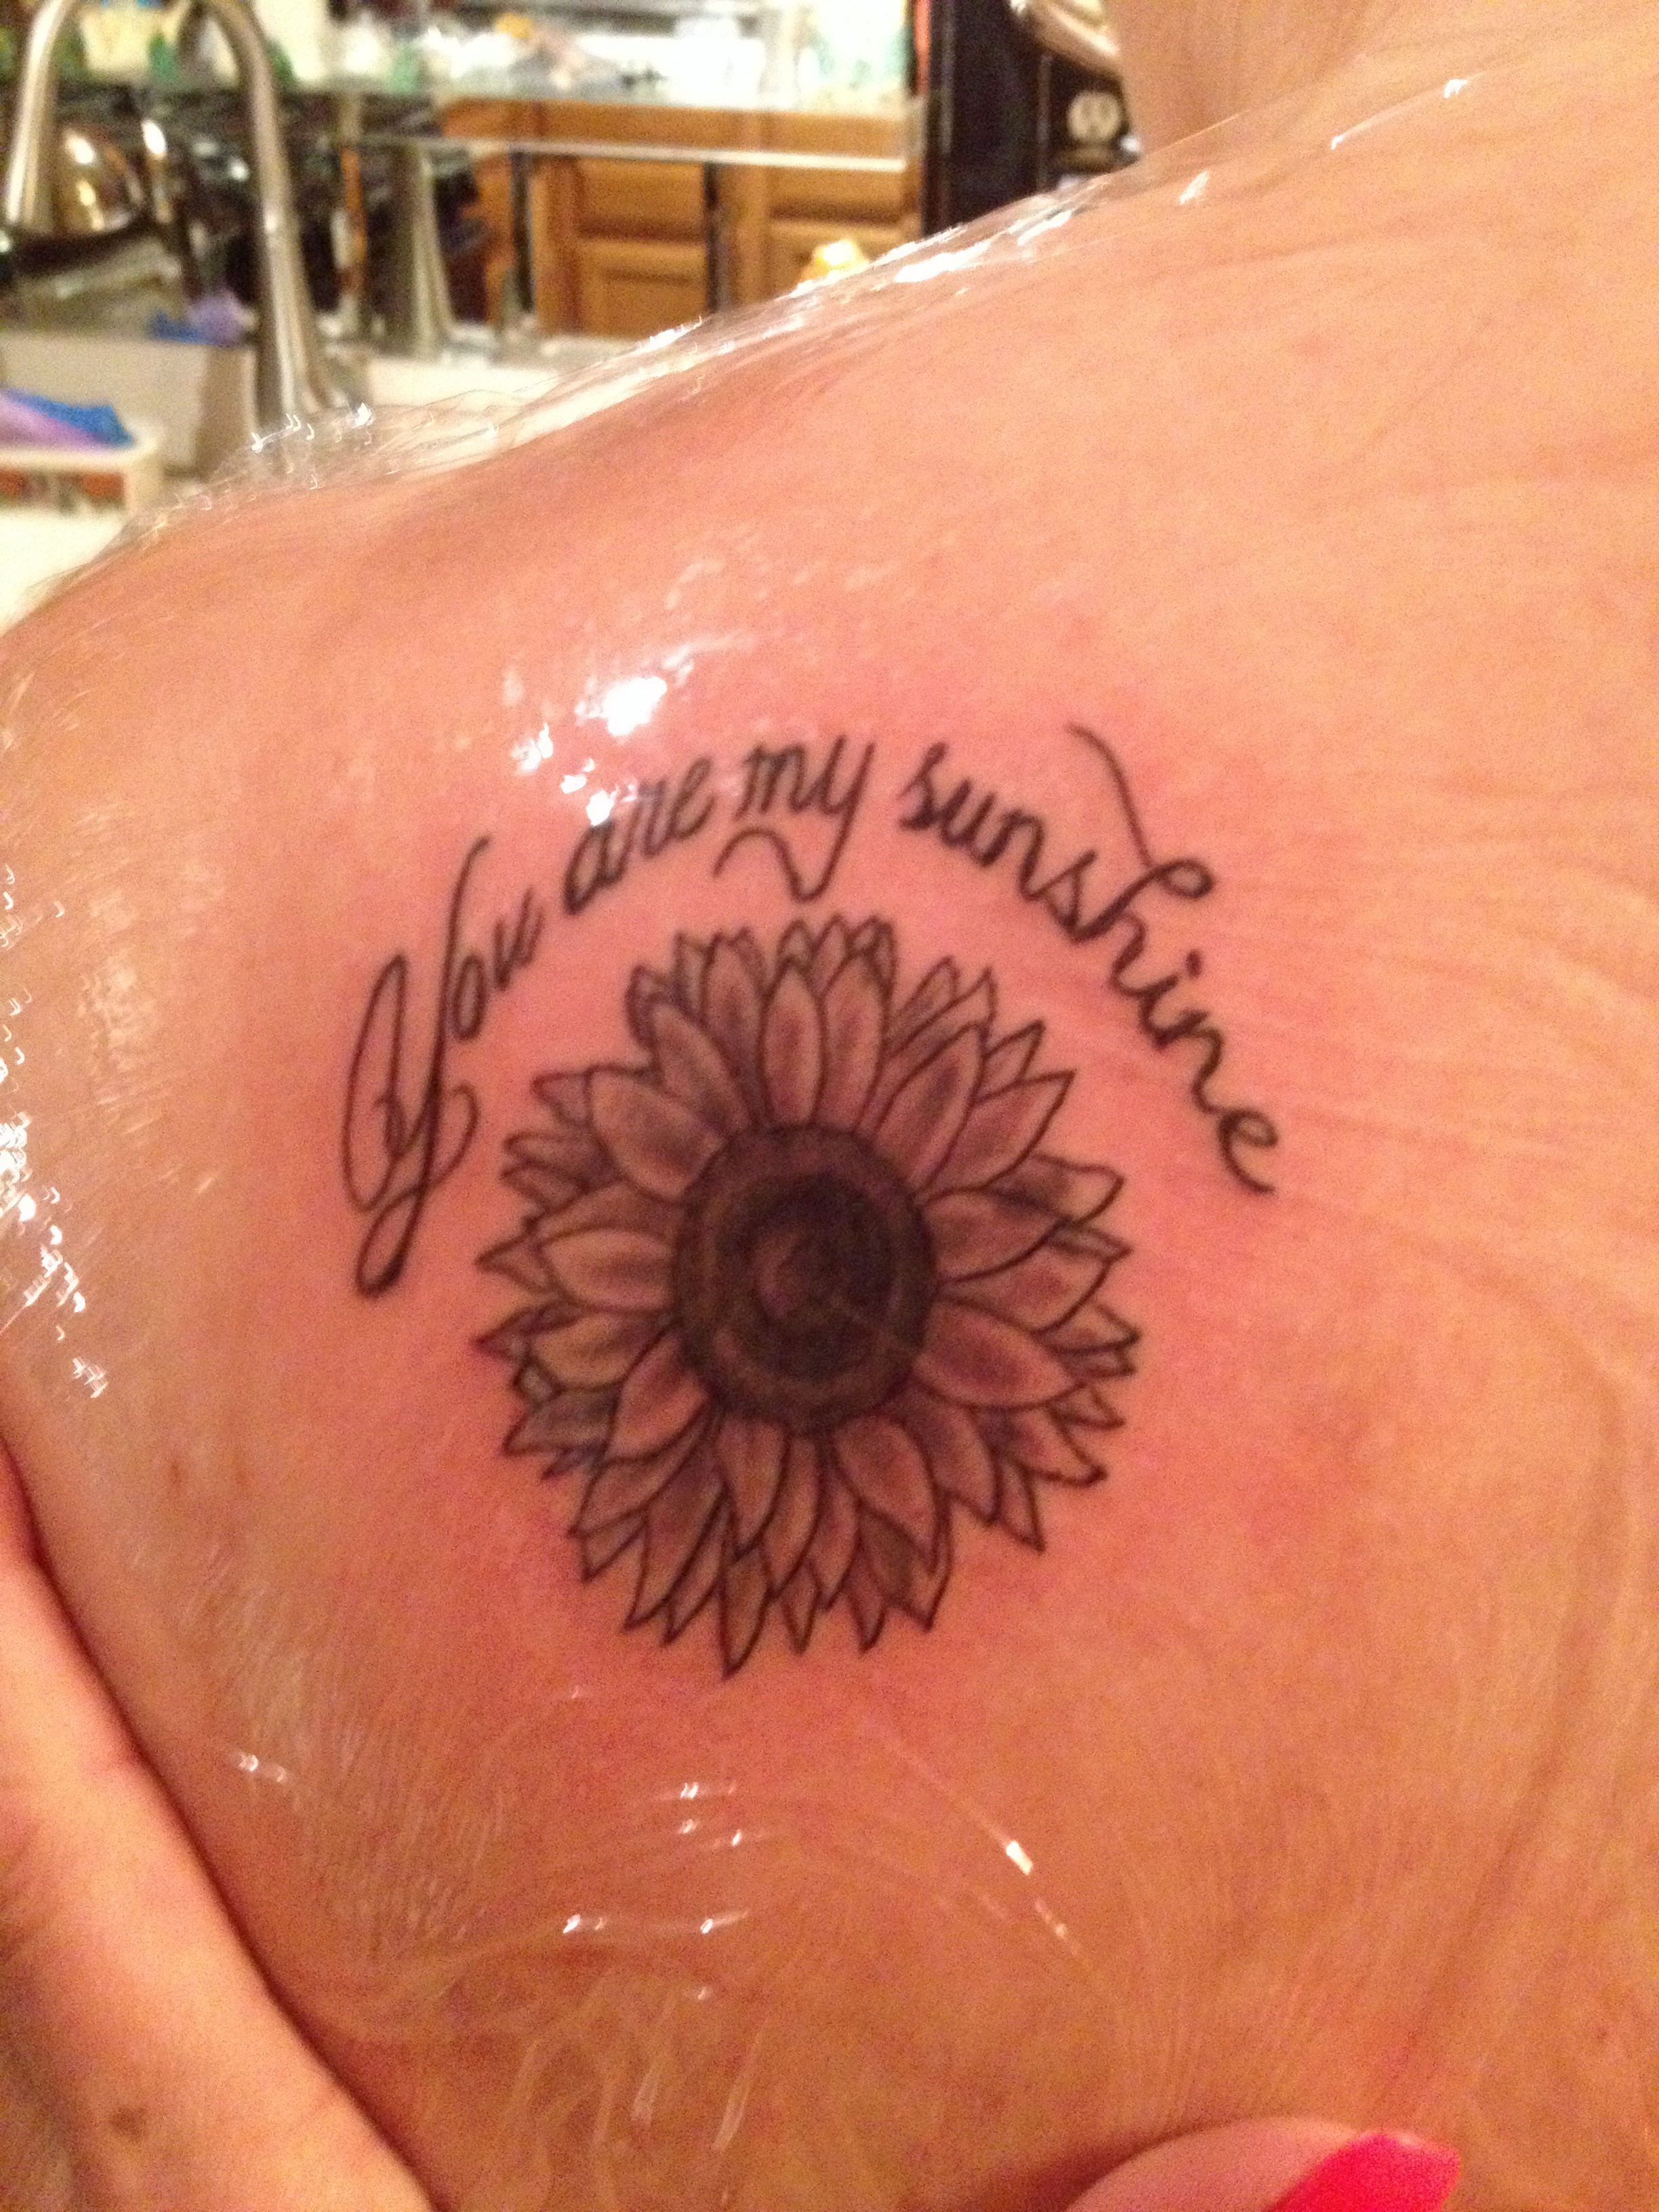 sunflower tattoo you are my sunshine tattoos pinterest sunflower tattoos sunflowers and. Black Bedroom Furniture Sets. Home Design Ideas